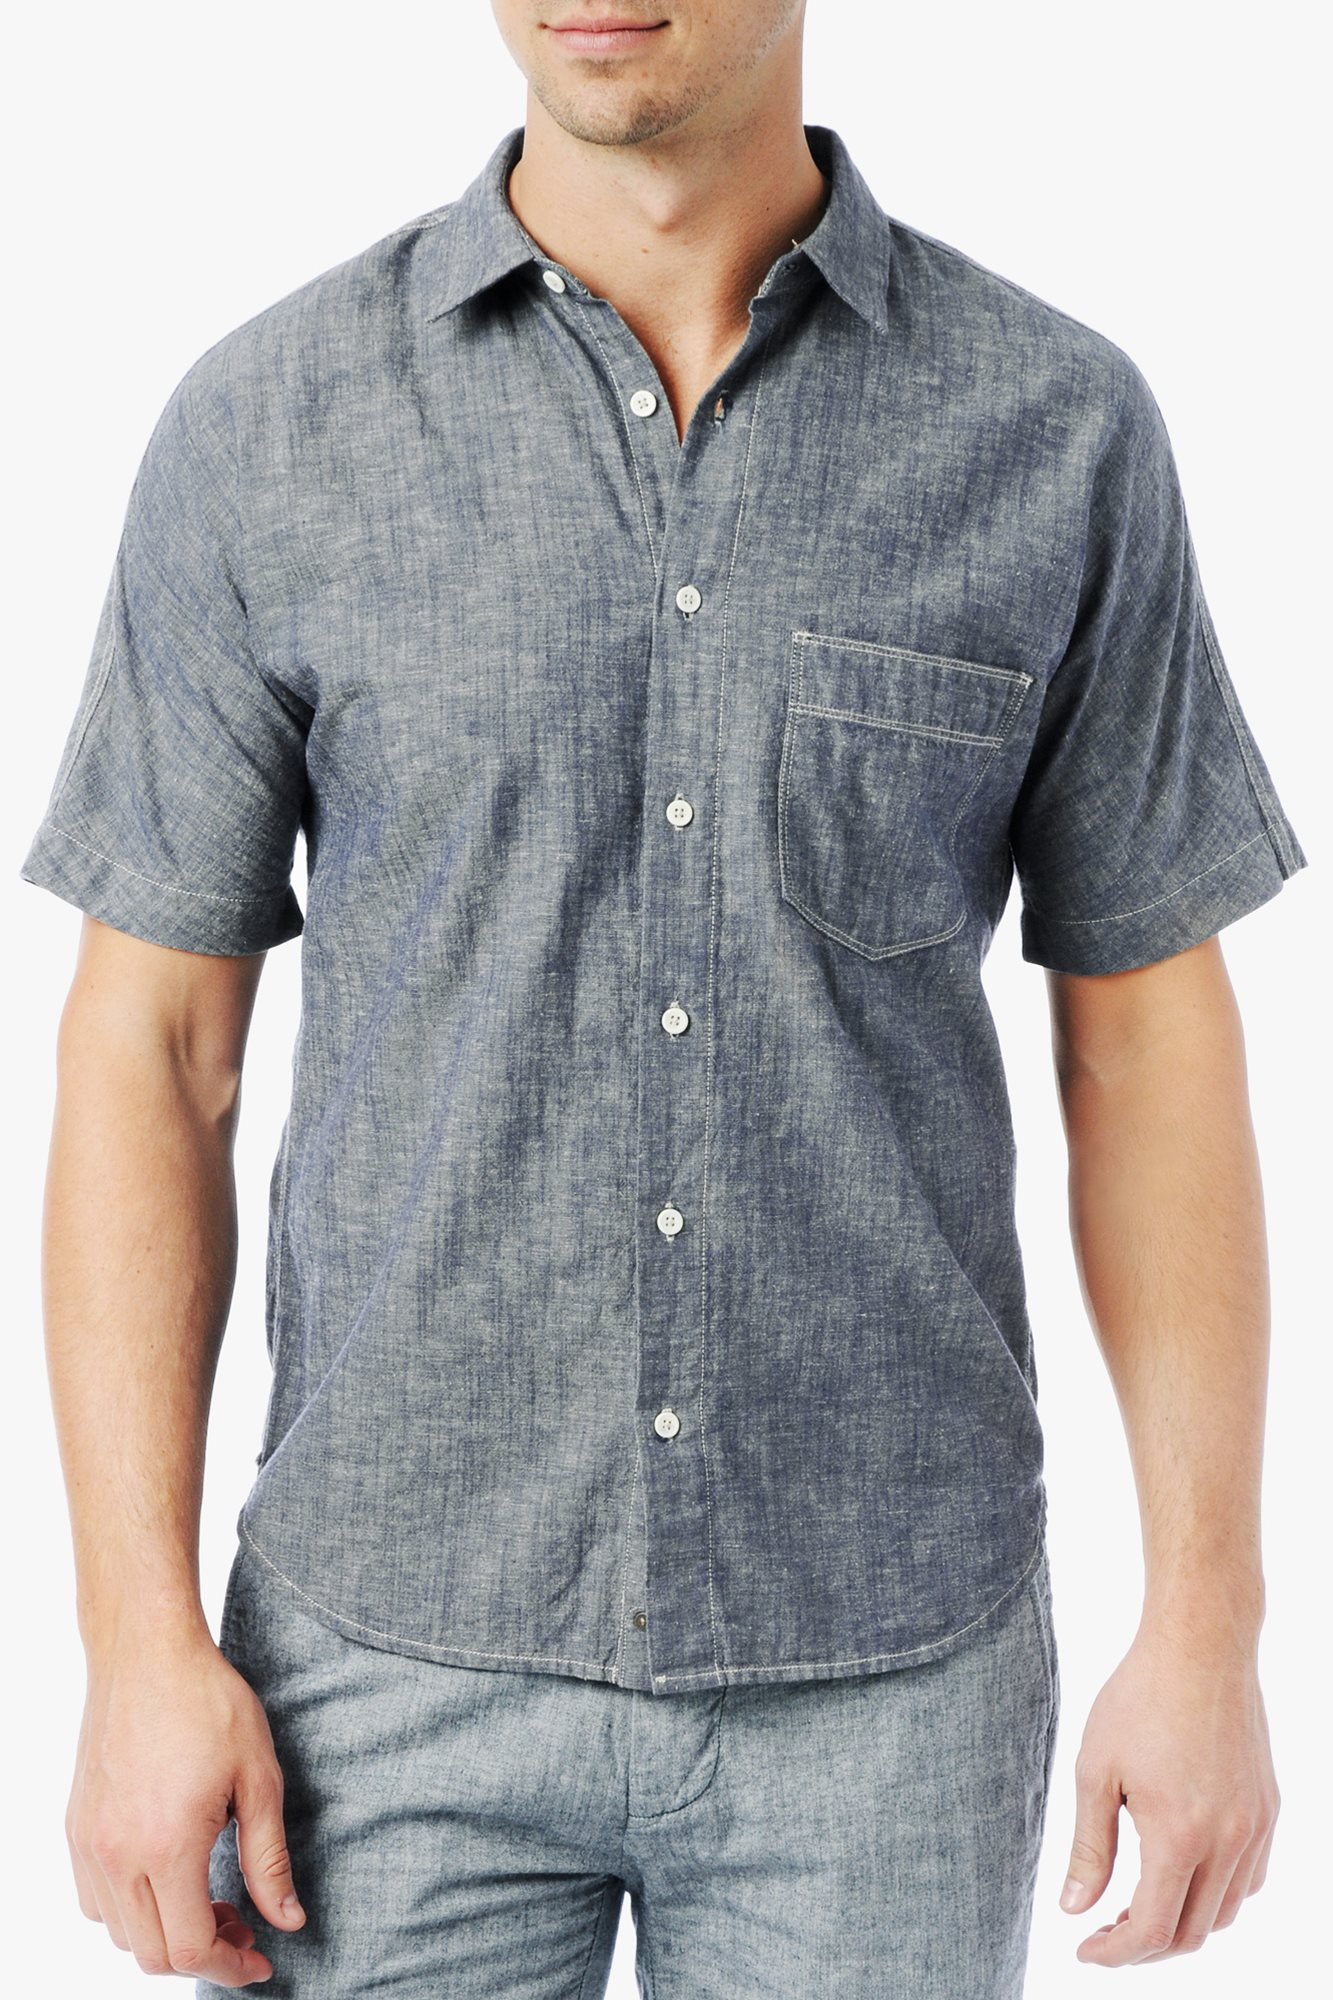 Lyst 7 For All Mankind Short Sleeve Chambray Shirt In